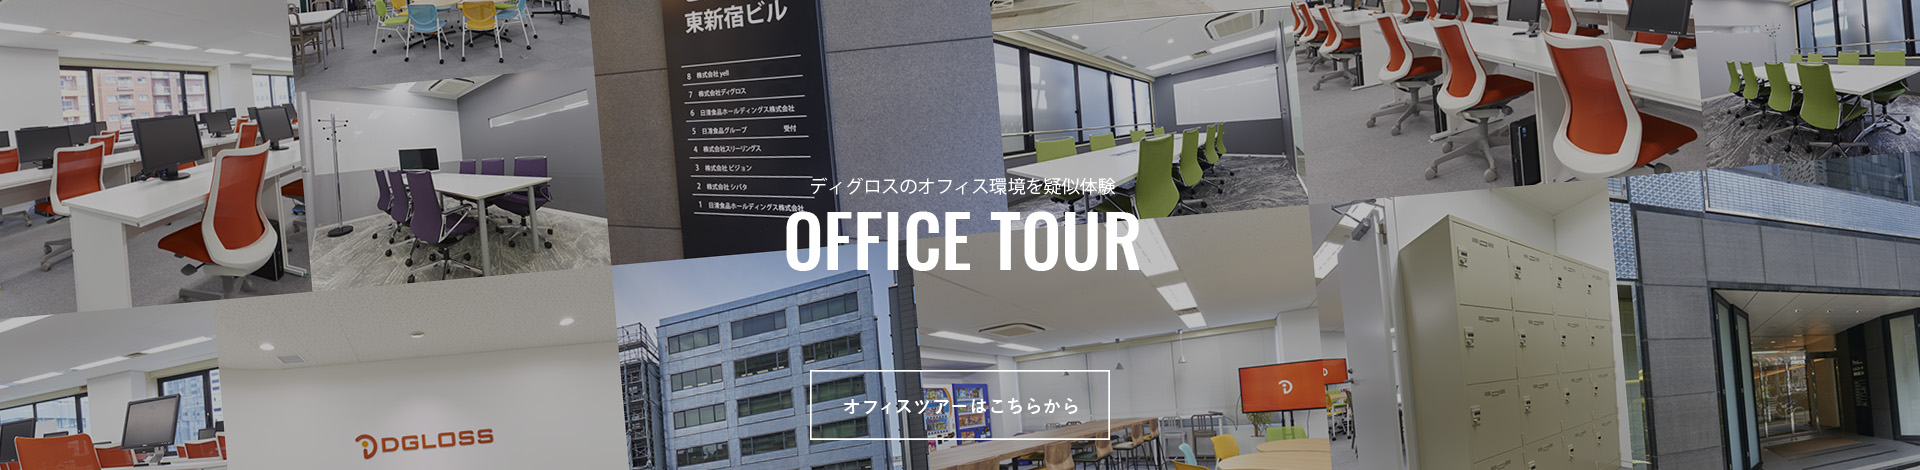 officetour